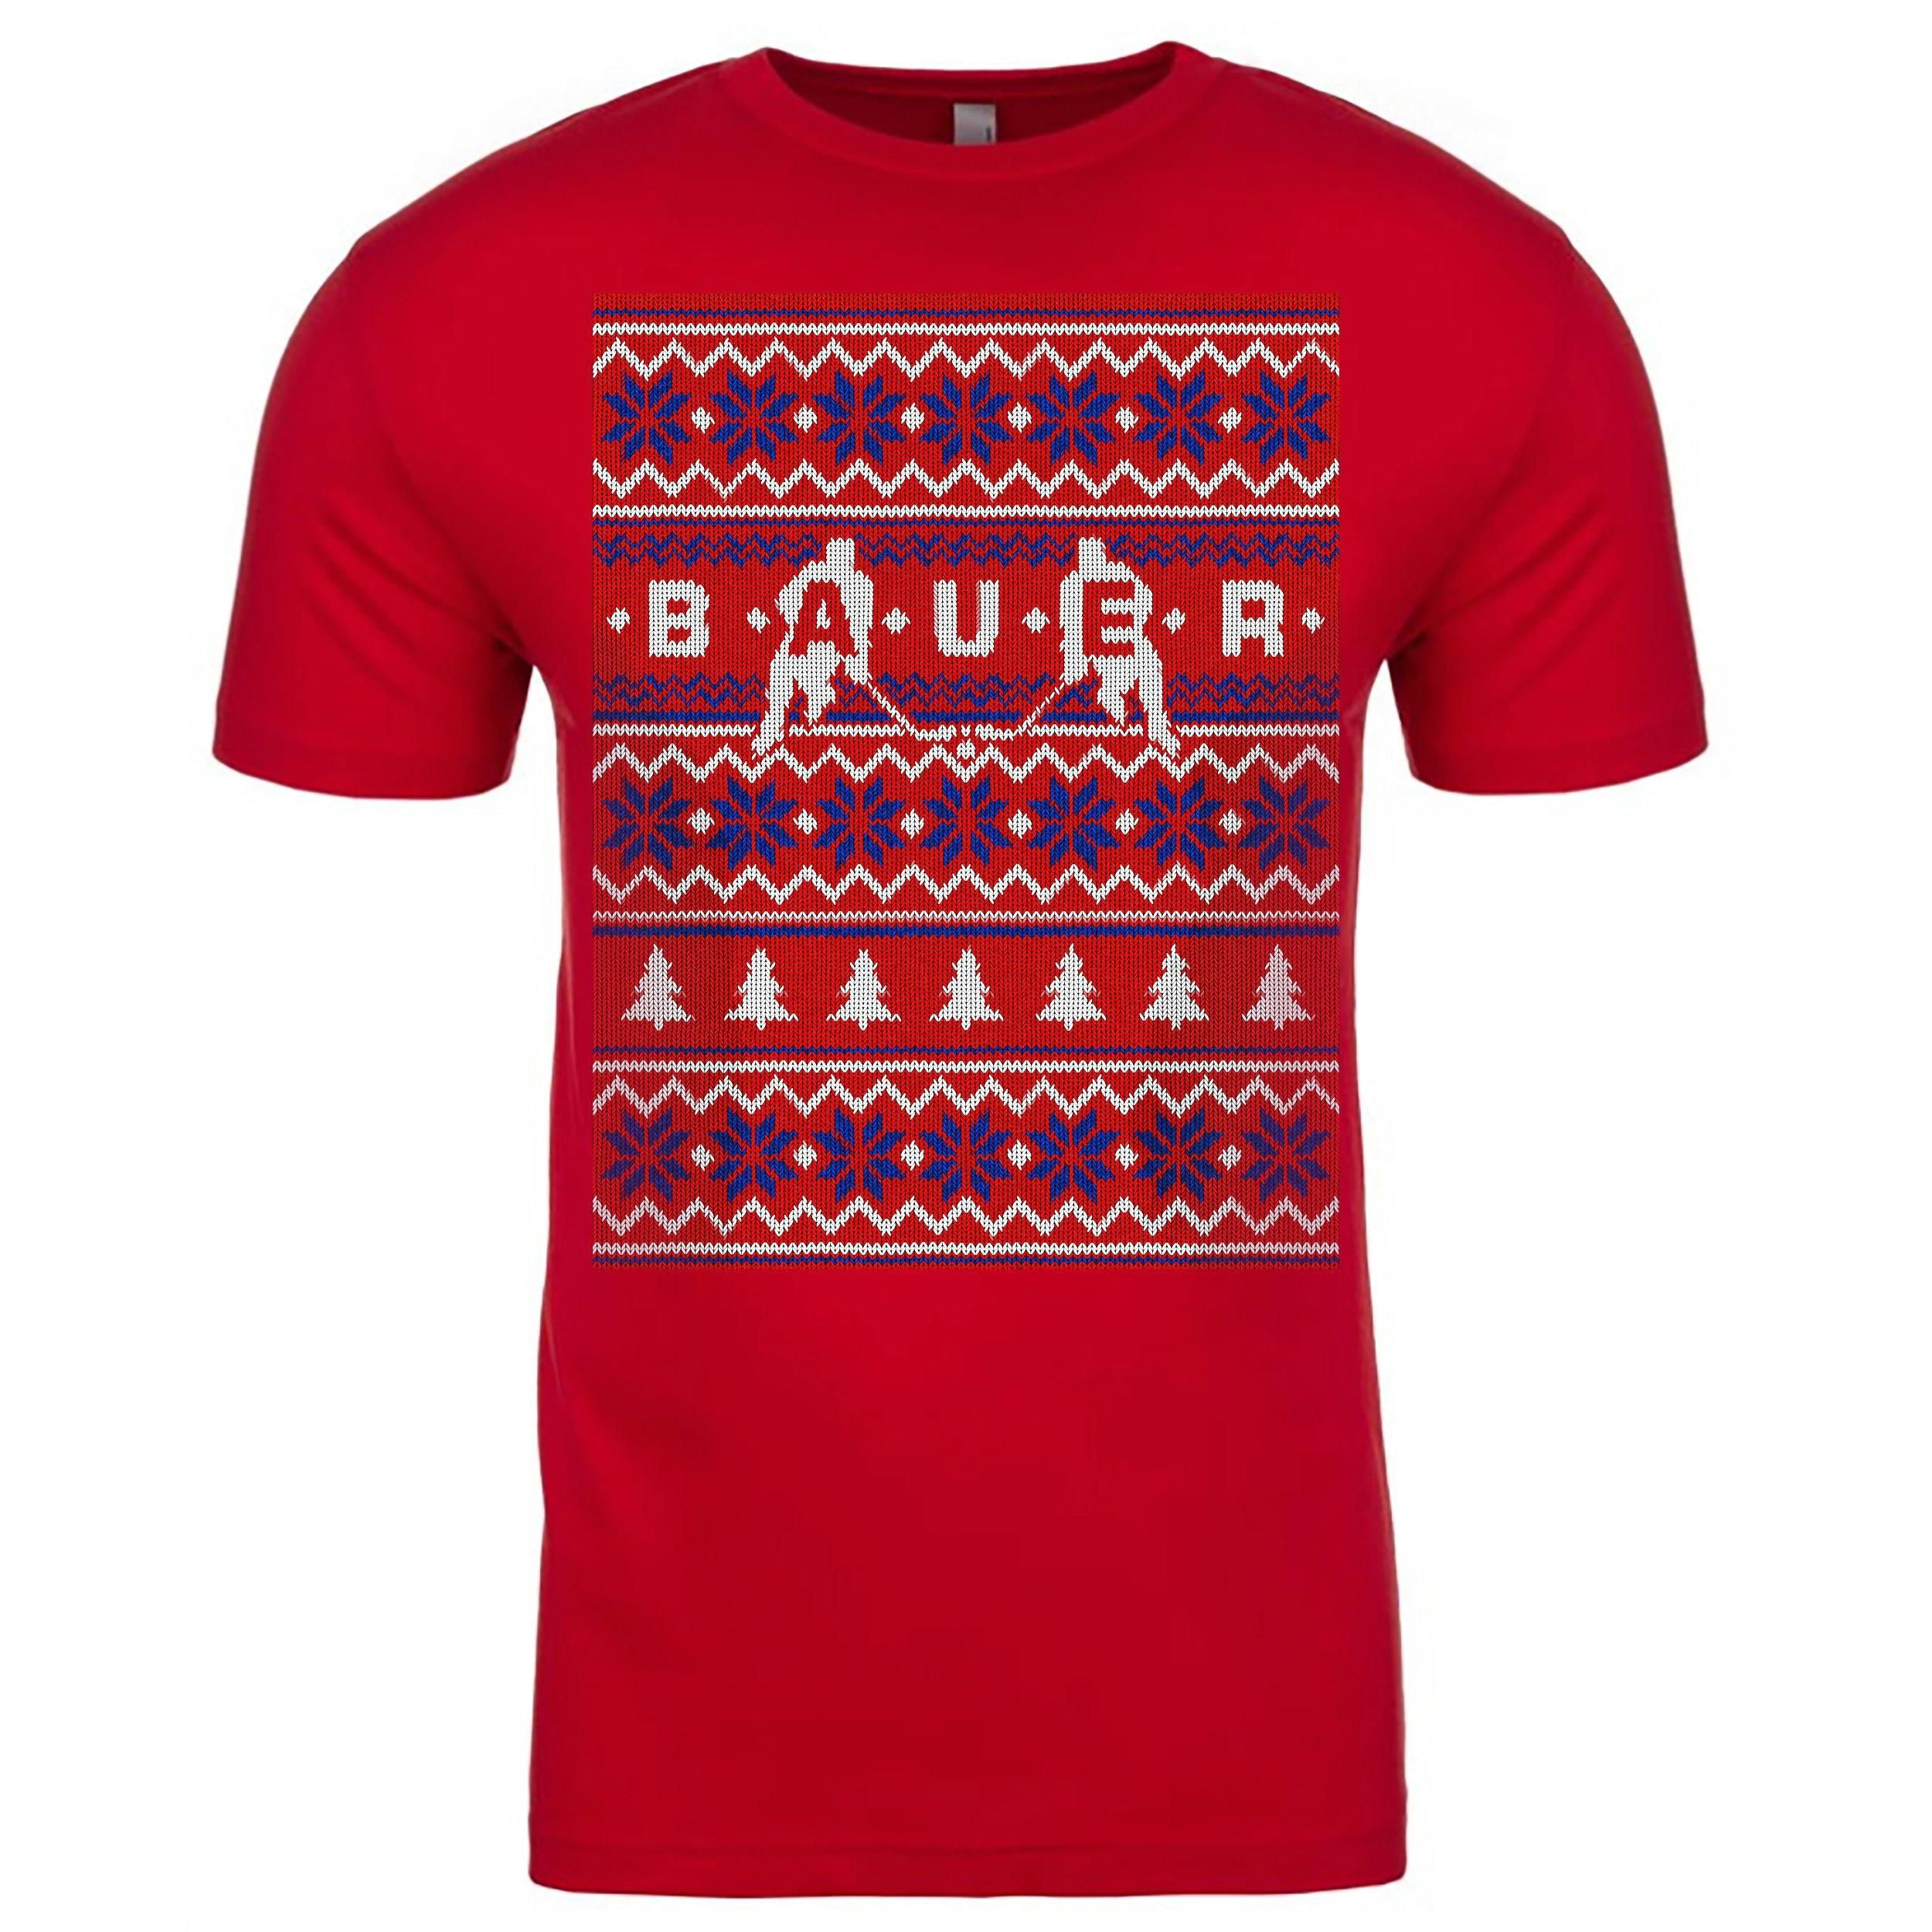 Bauer Short Sleeve Tee - Holiday Sweater Senior,,moyen